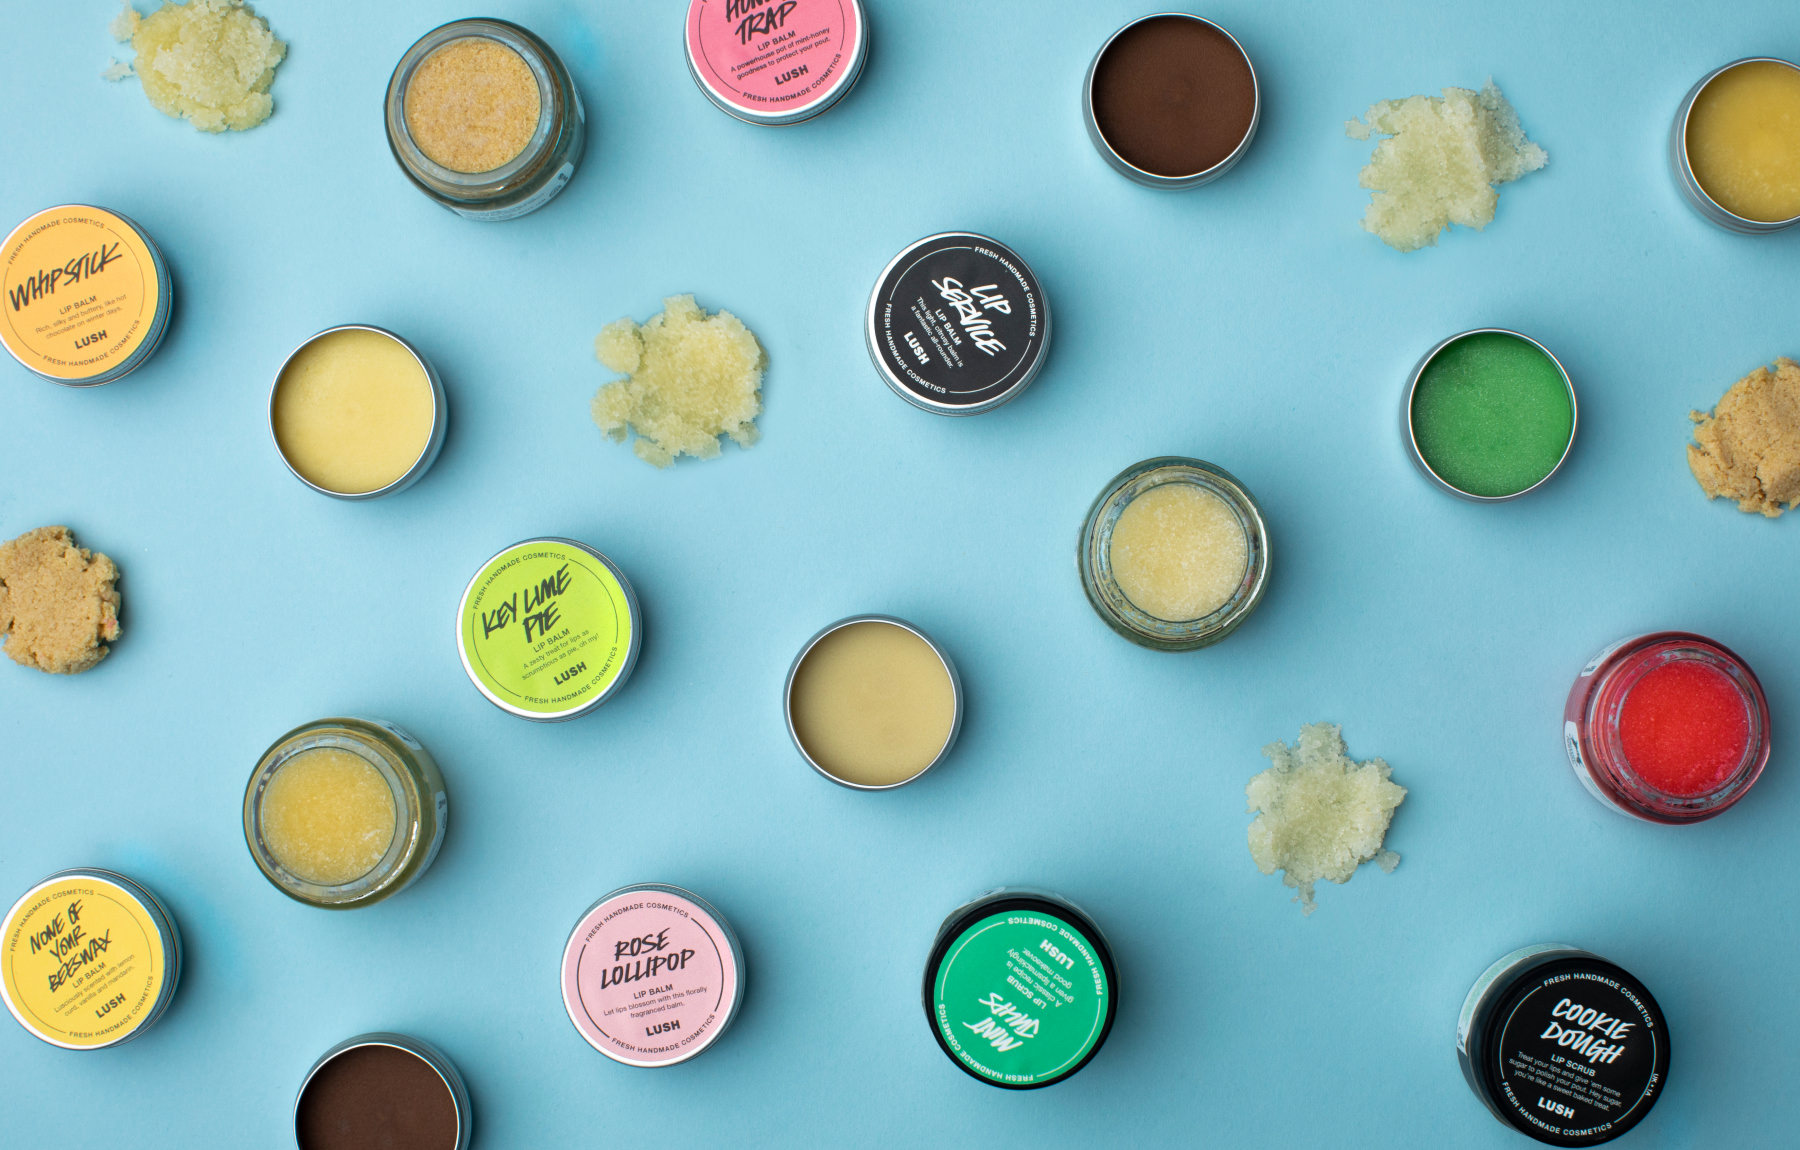 a selection of lip scrubs and lip balms